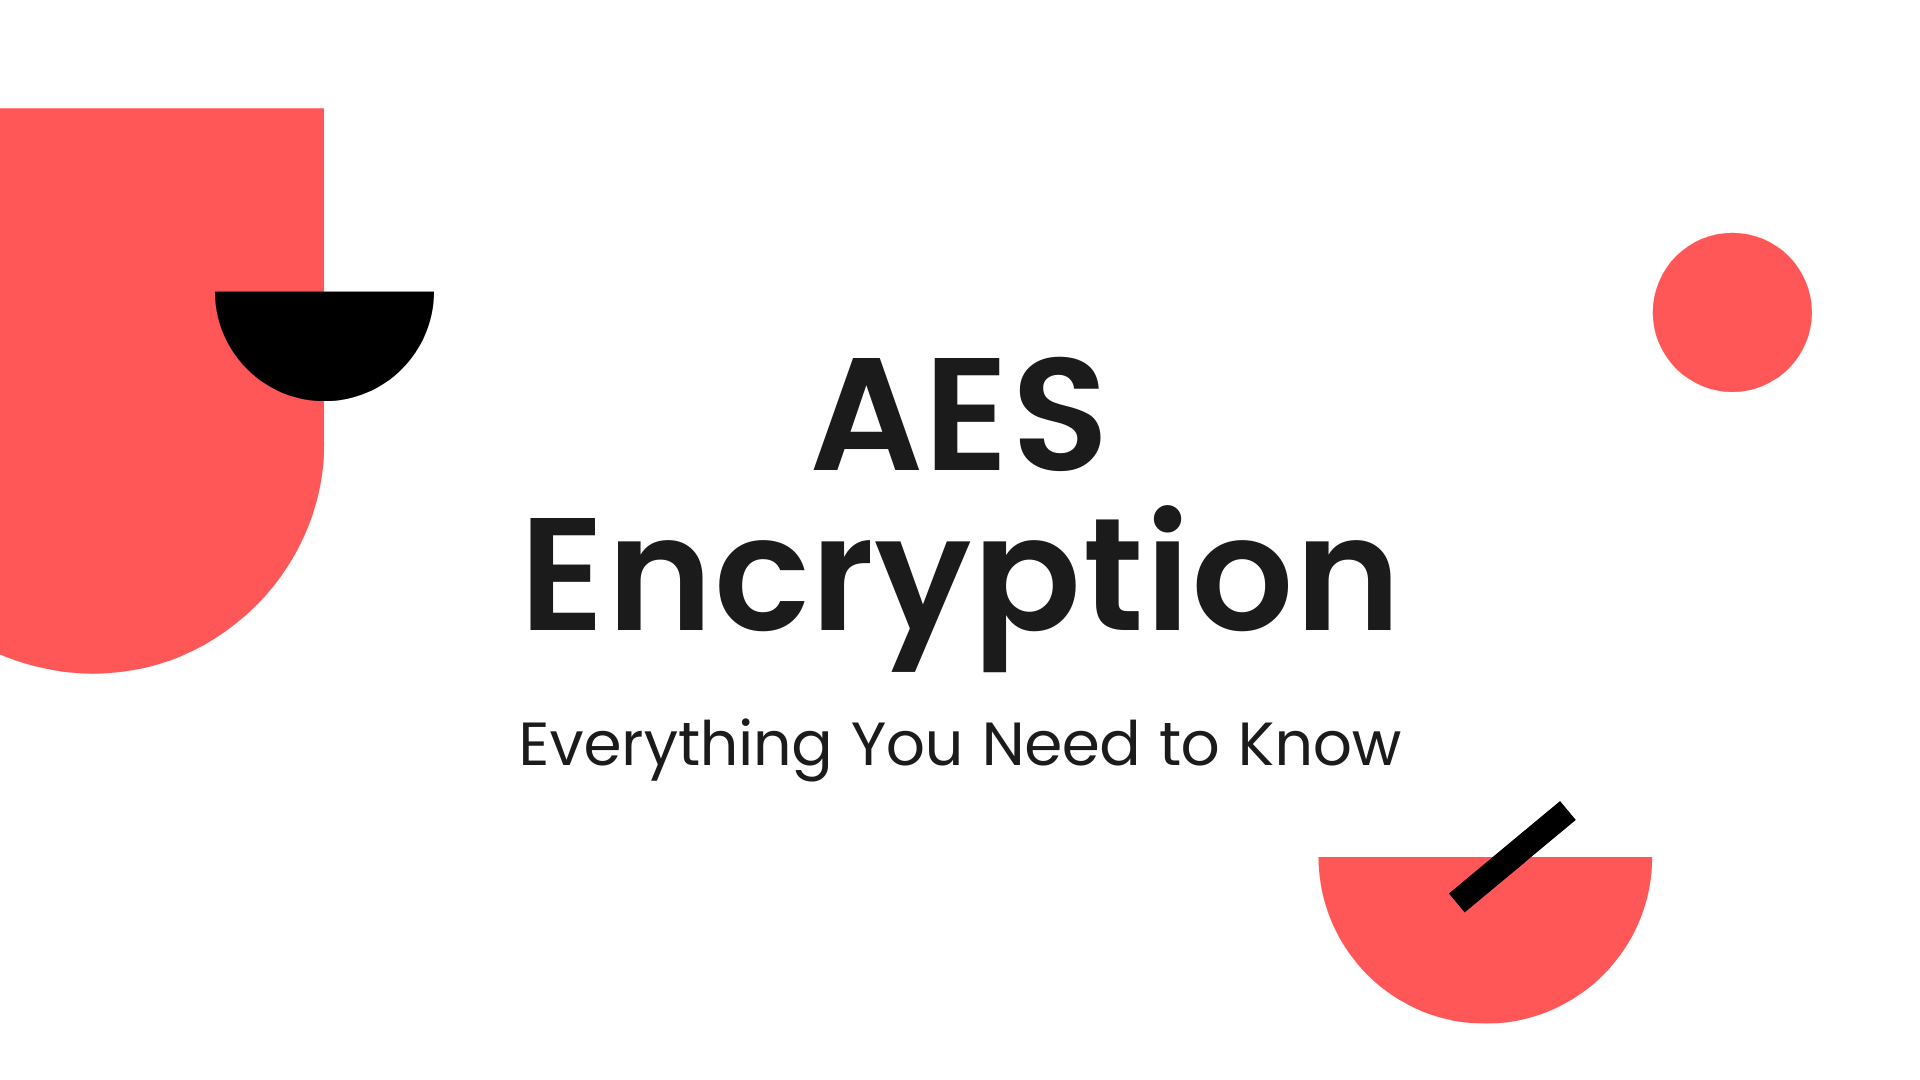 AES Encryption: The Definitive Question-And-Answer Guide